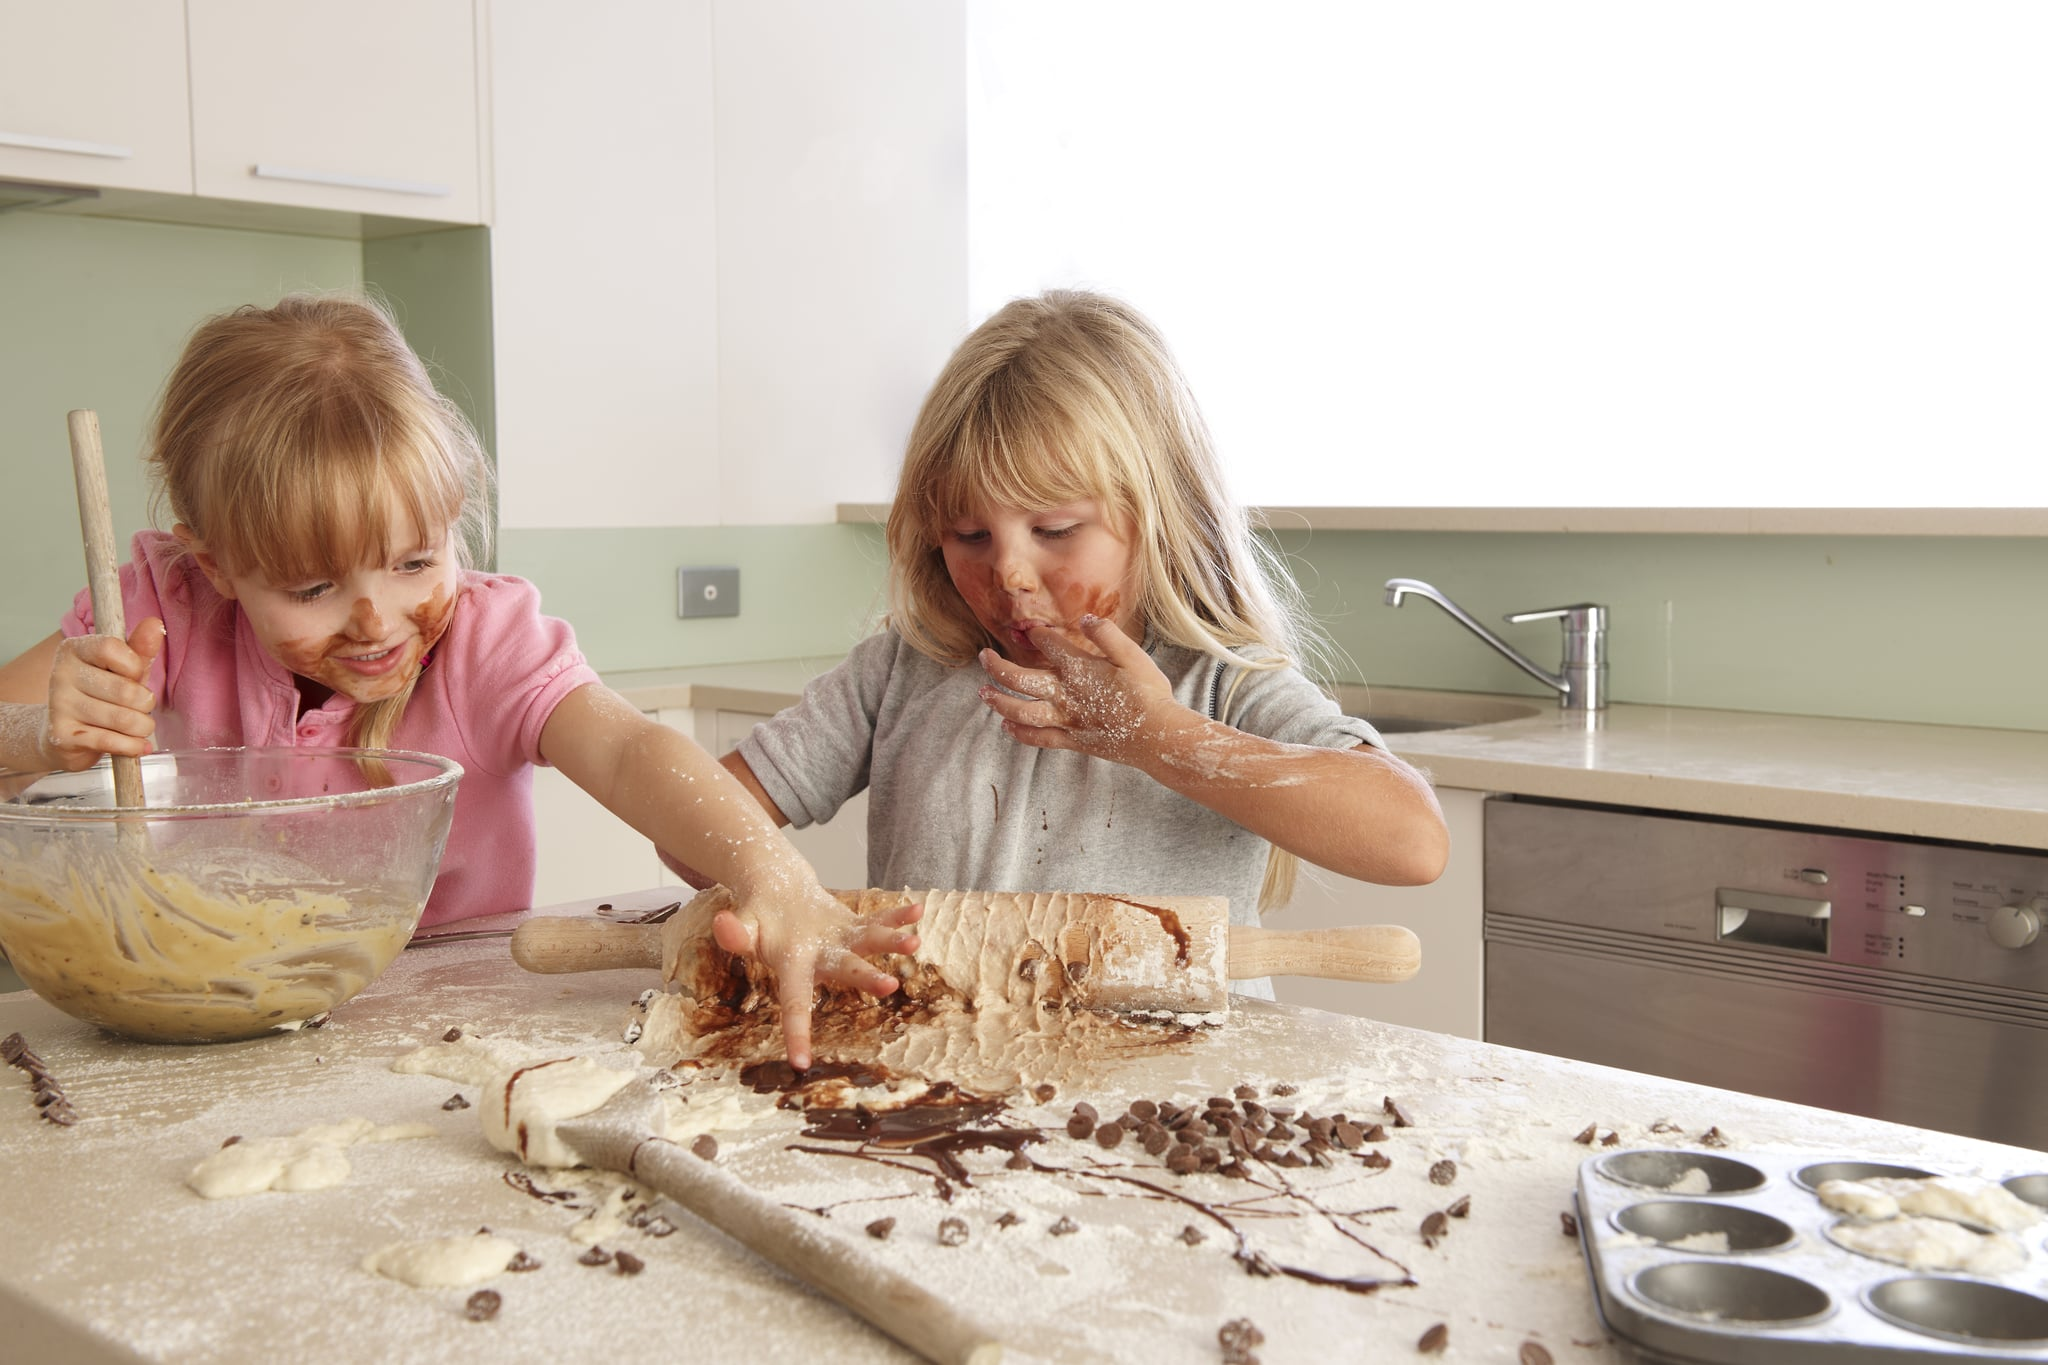 Play Dates Are Messy, Stressful, and So Much Work For Me — So I Don't Host Them